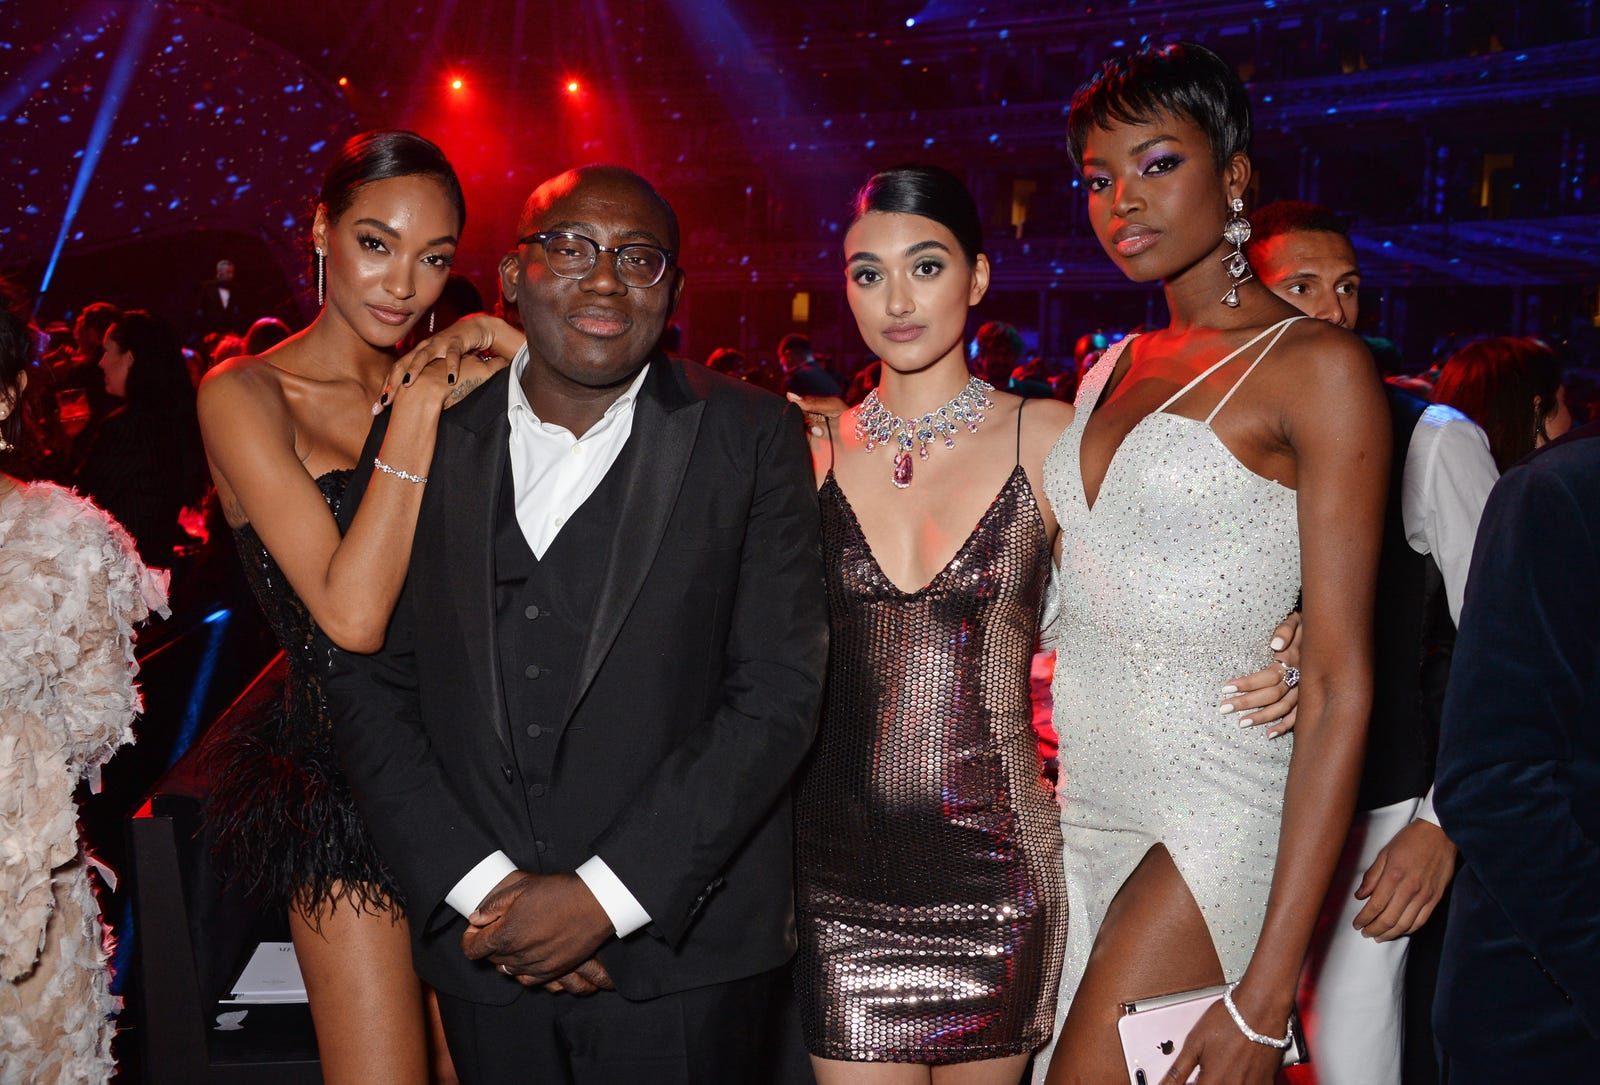 (L to R) Jourdan Dunn, Edward Enninful, Neelam Gill and Maria Borges